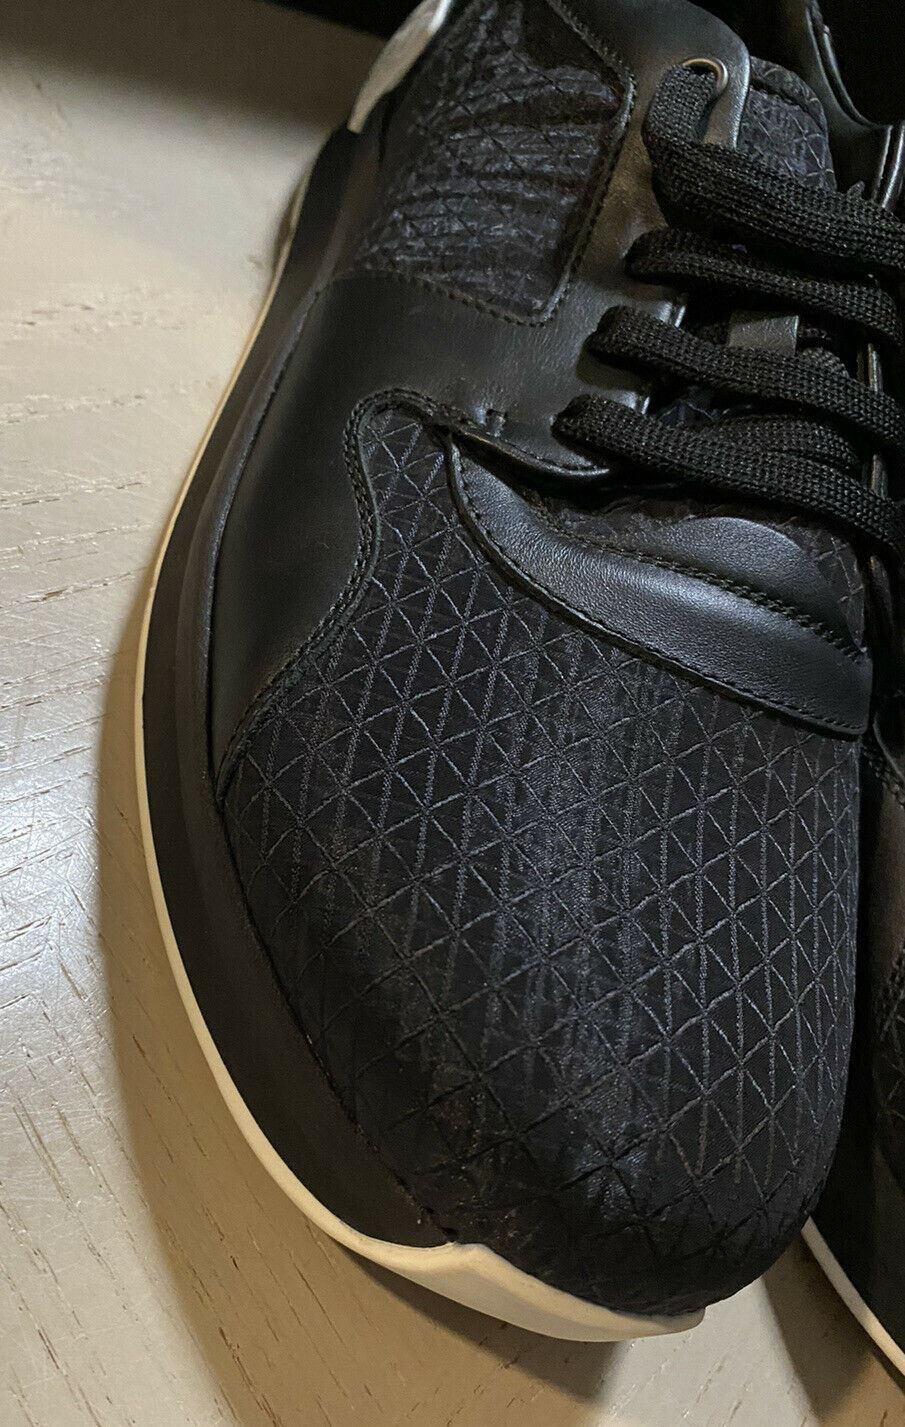 NIB $690 Bottega Veneta Men Textile/Leather Sneakers Shoes Black 8.5 US/41.5 Eu